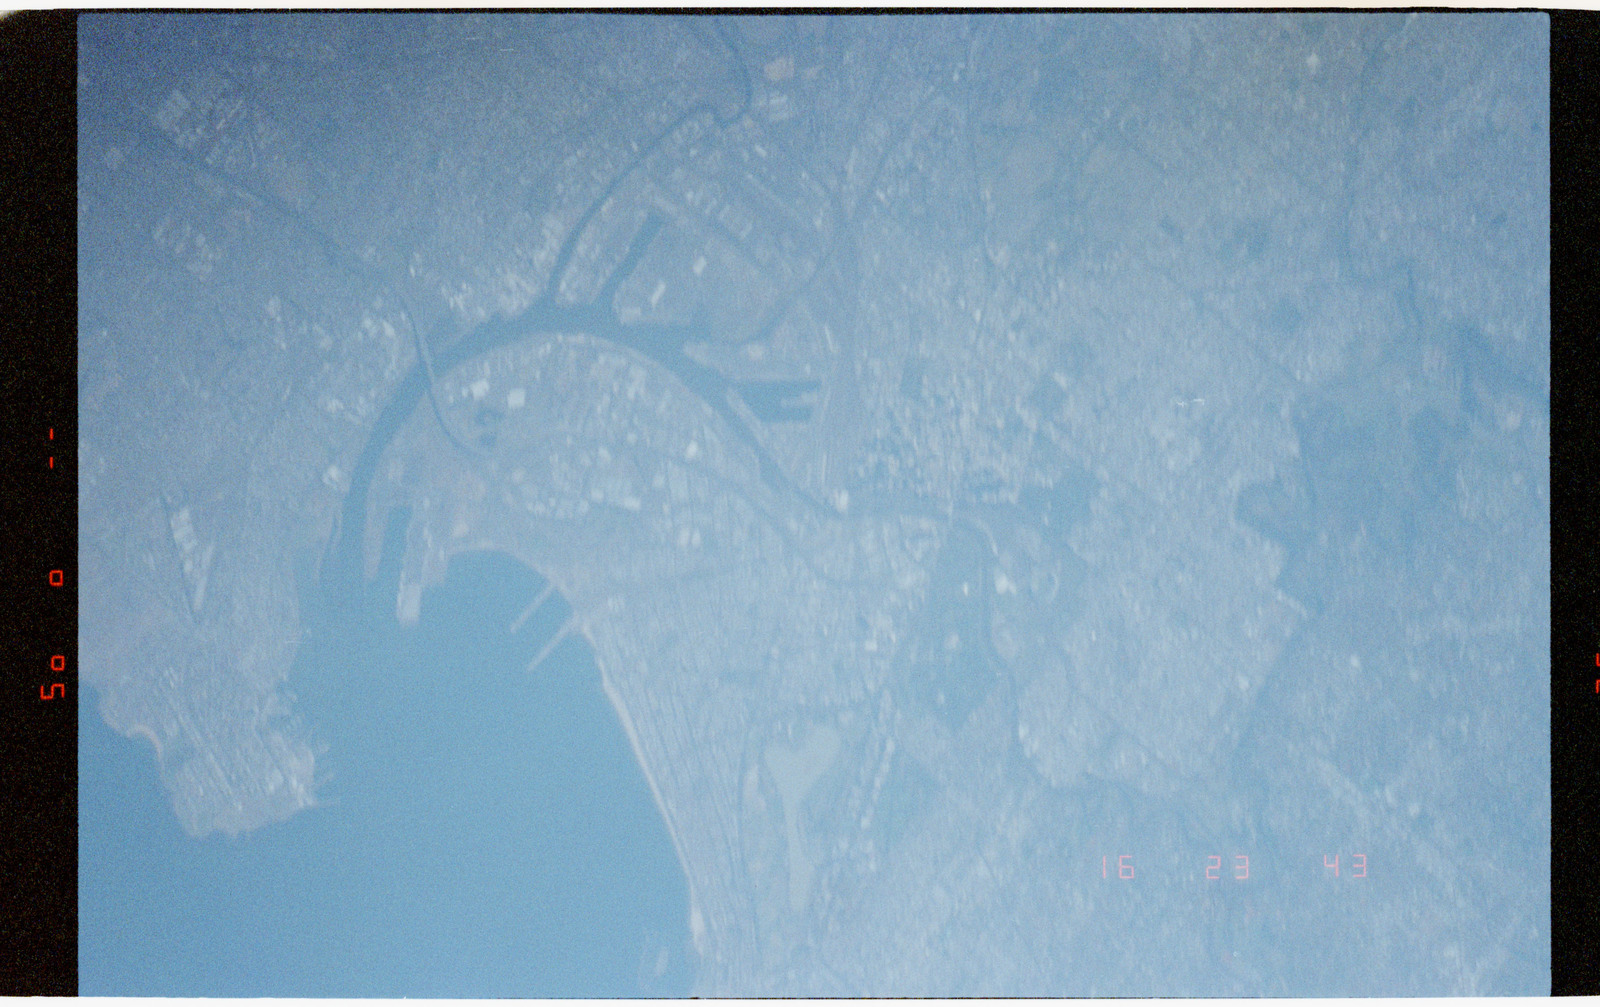 STS056-38-019 - STS-056 - Out of focus Earth observations views of Melbourne, Victoria, Australia